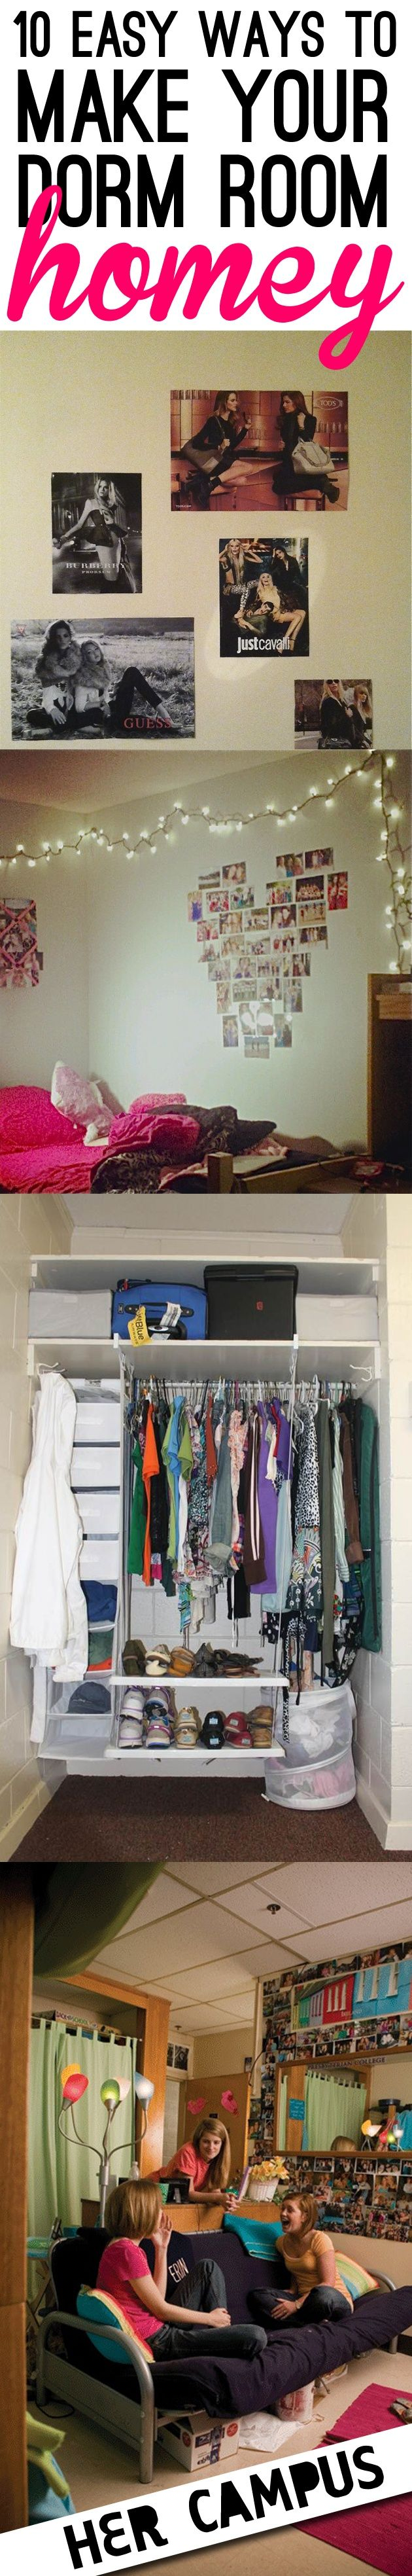 10 Ways To Make Your Dorm Room Feel More Homey #dorms #collegedorms